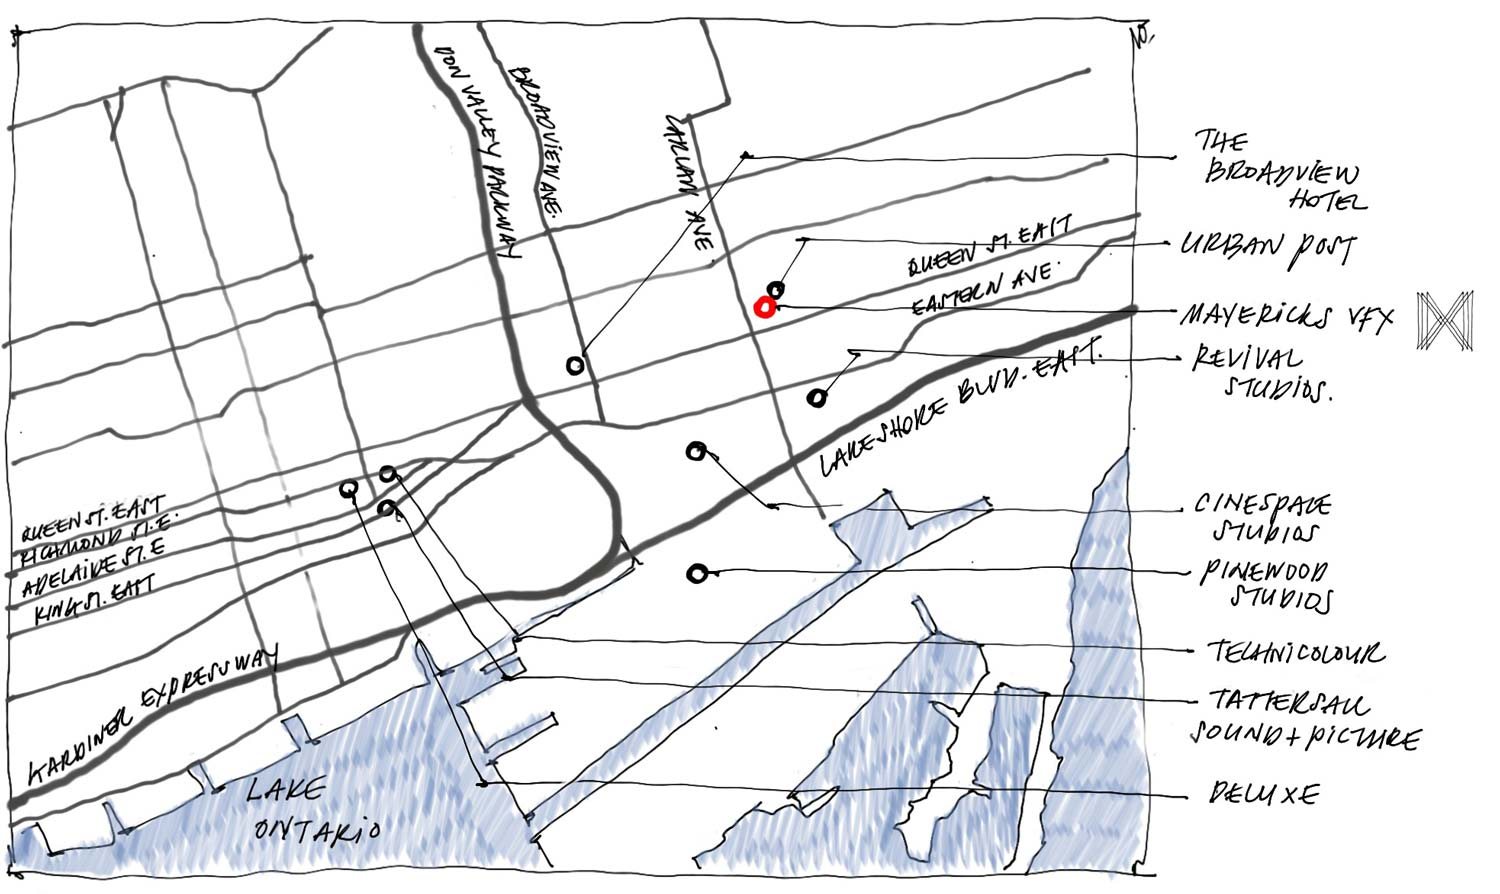 drawing of Mavericks's location